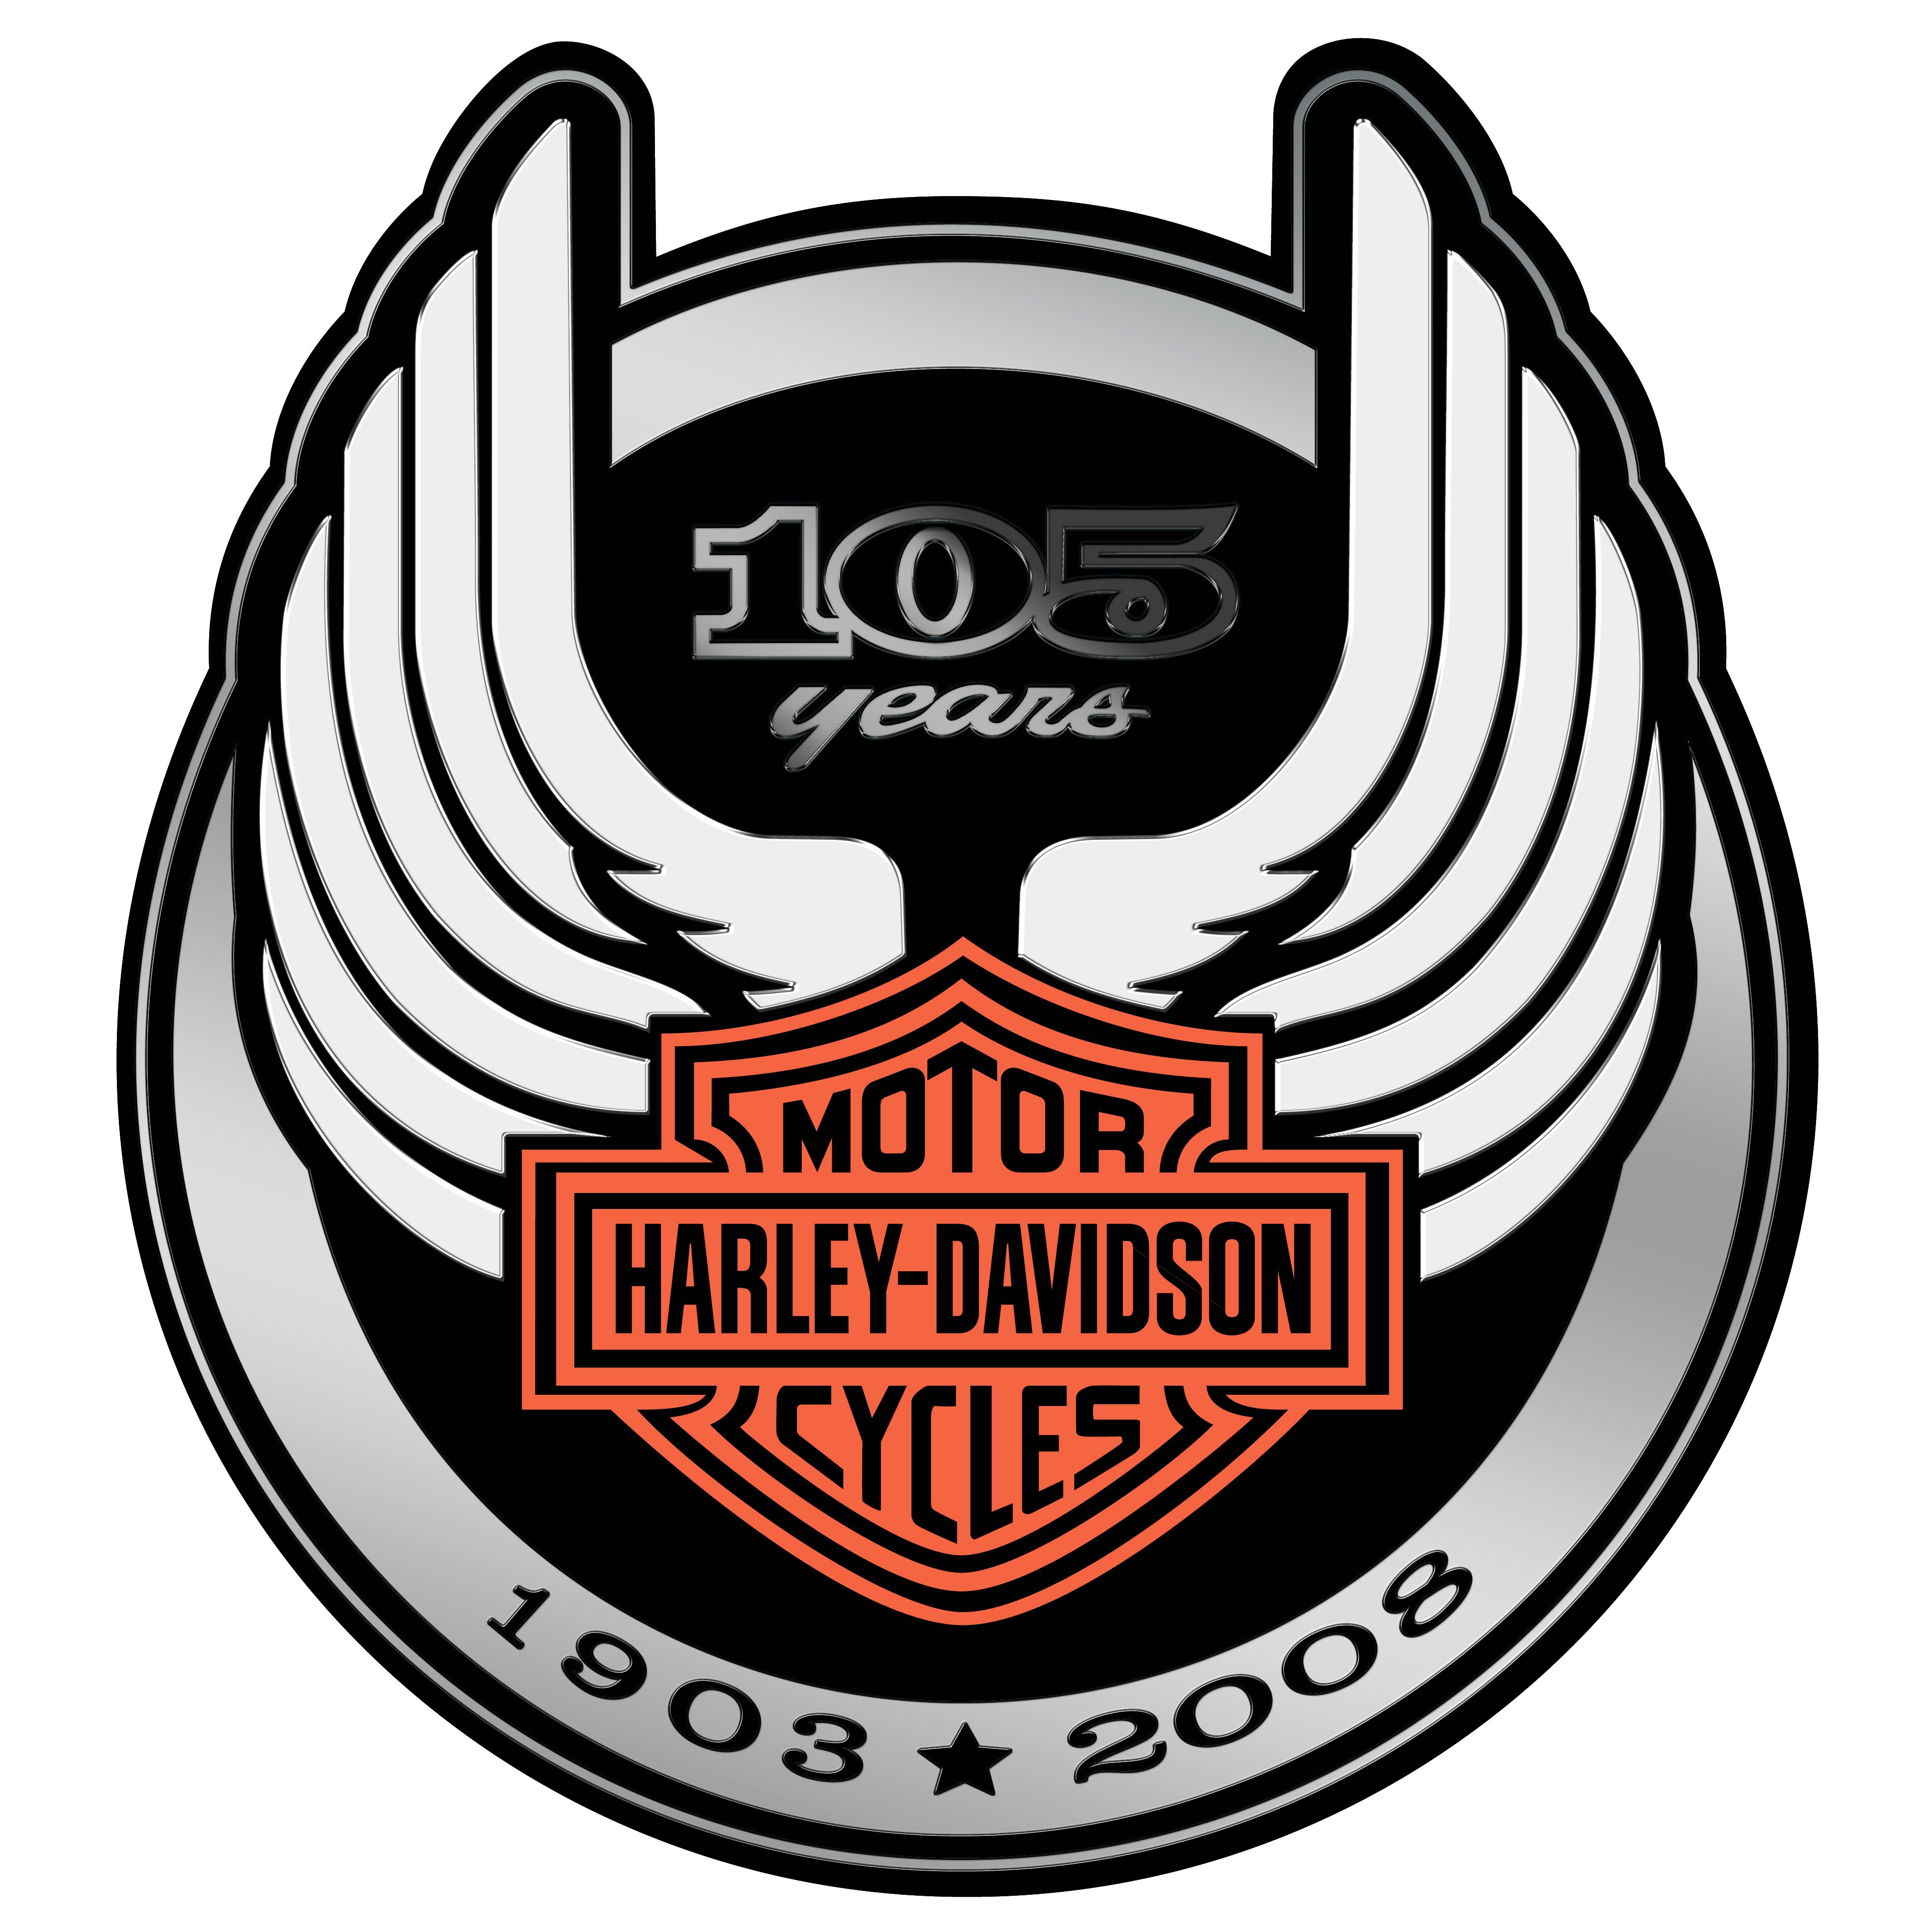 harley davidson logo drawing at getdrawings com free for.